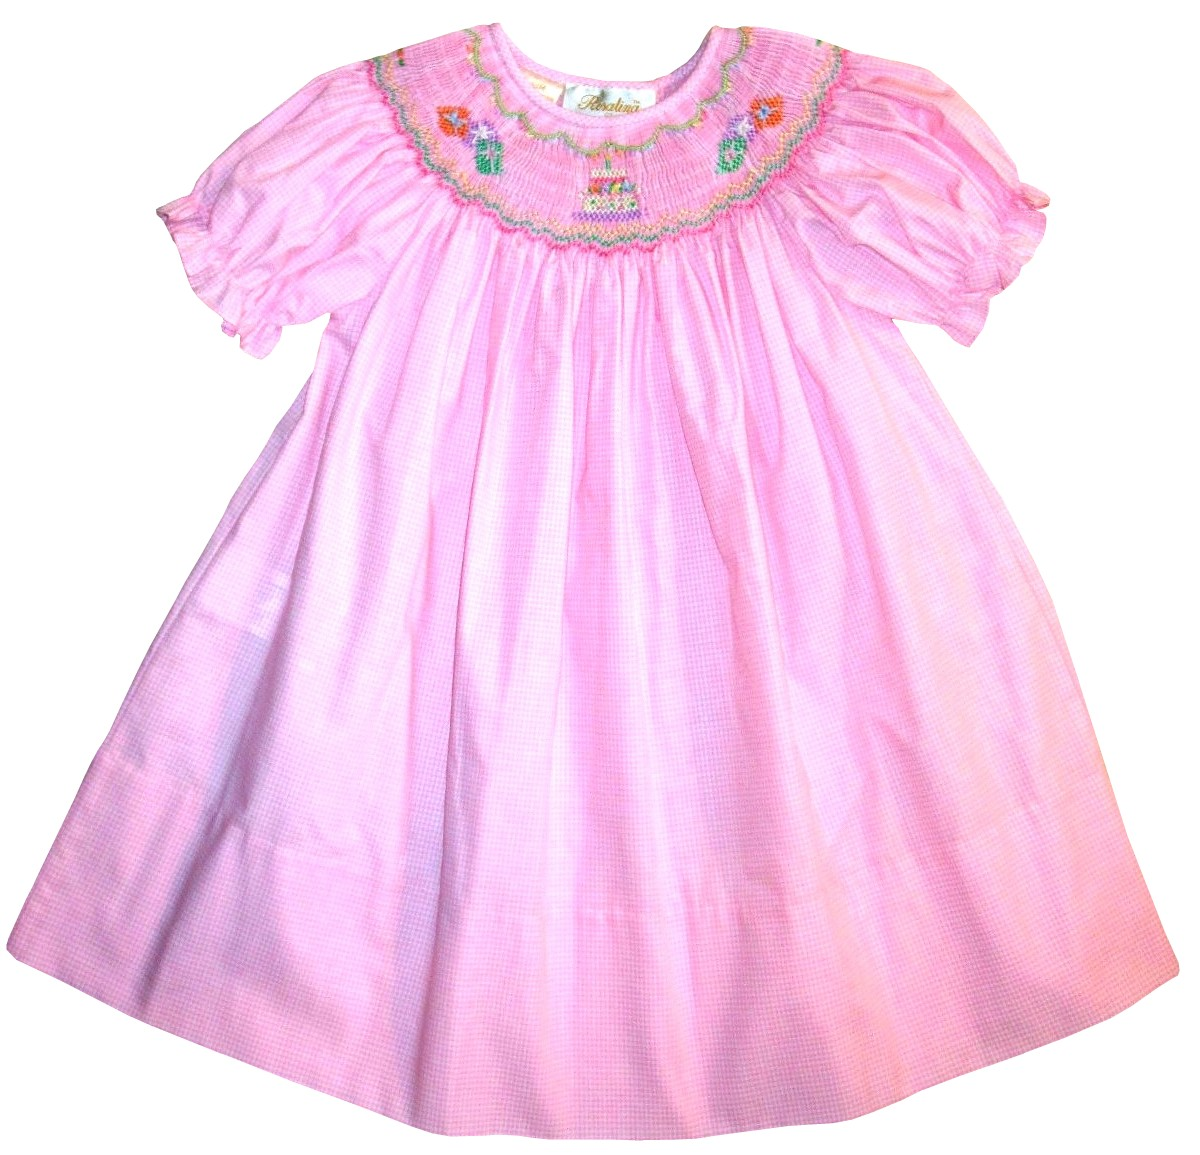 Girls Smocked Birthday Cake and Presents Pink Birthday Dress by